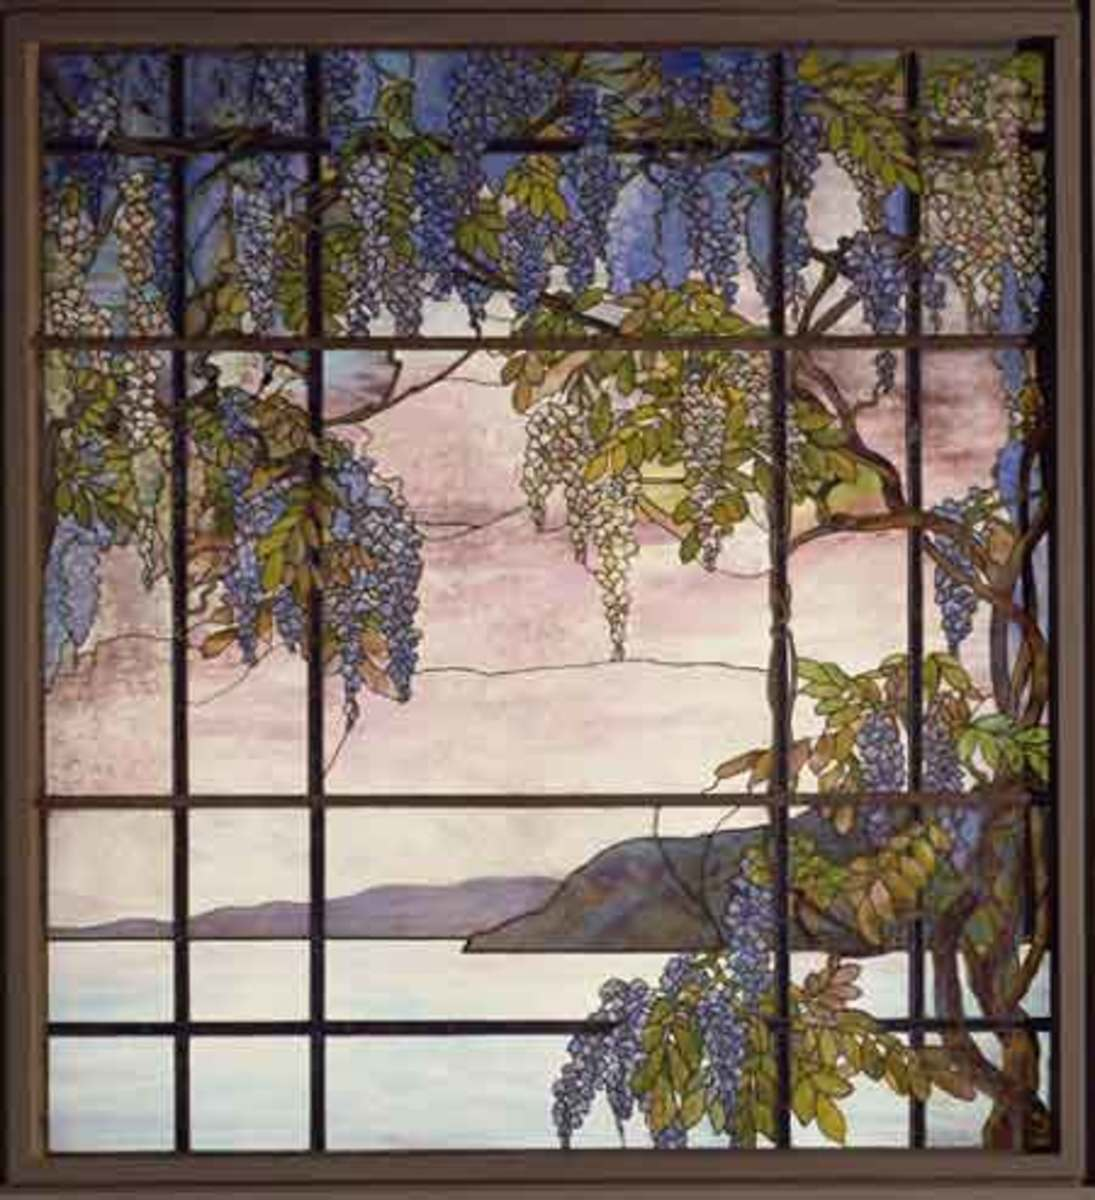 Louis Comfort Tiffany (18481933) Tiffany Studios (19021938) View of Oyser Bay , ca. 1908  Leaded Favrile-glass from the William C. Skinner House, New York City 72 3/4 x 66 1/2 in (184.8 x 168.9 cm )  Lent to The Metropolitan Museum of Art by The Char